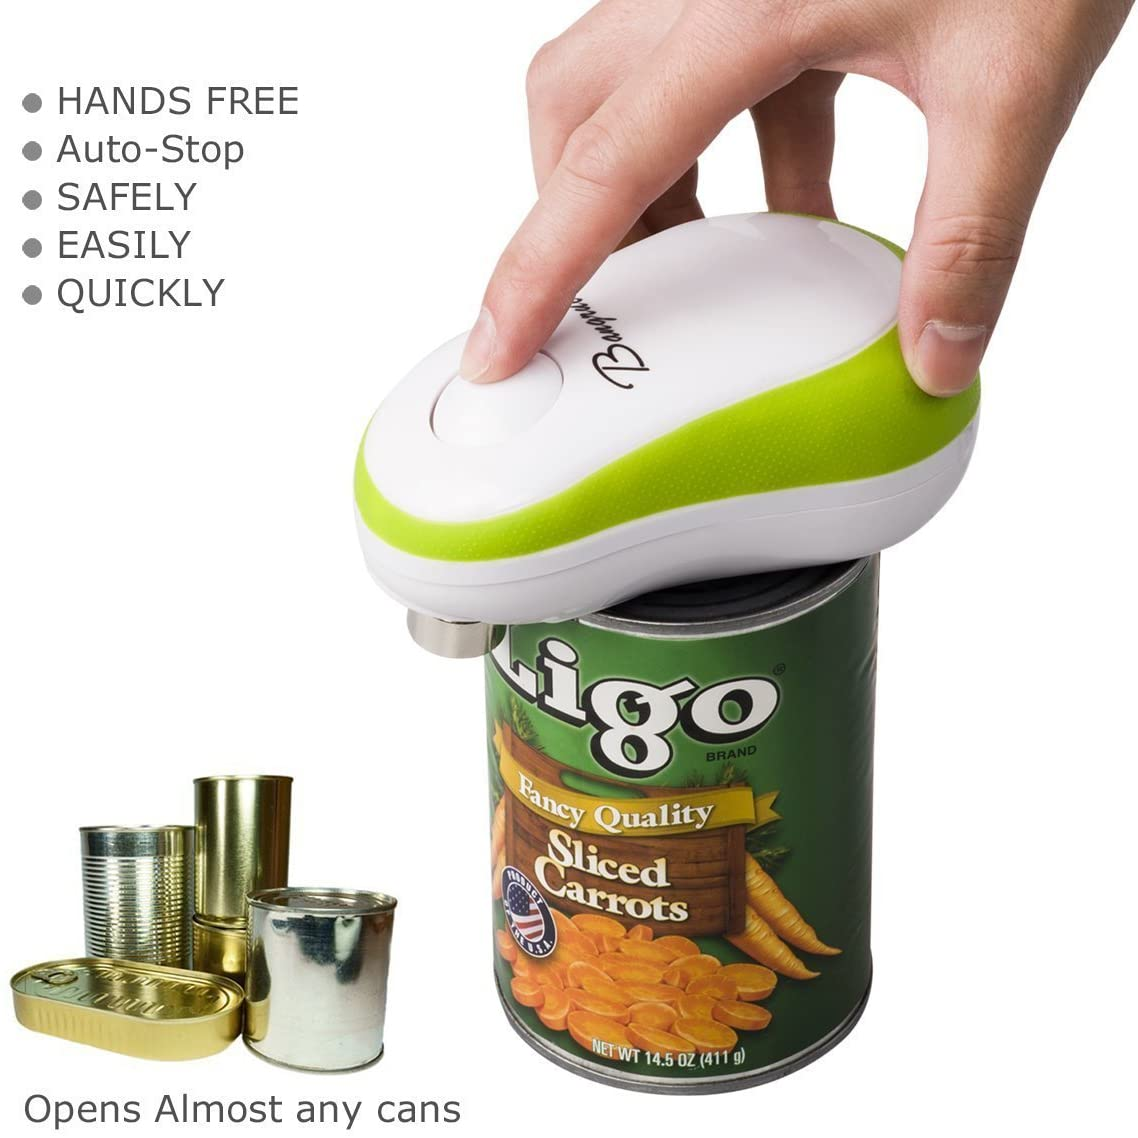 Kitchen Automatic Safety Cordless One Tin Touch Electric Can Opener&2019 Updated (Bangrui) Intellectual Electric Can Opener:Smooth Edge,Stop Automatically,a Good Helper in Cooking!(Green)